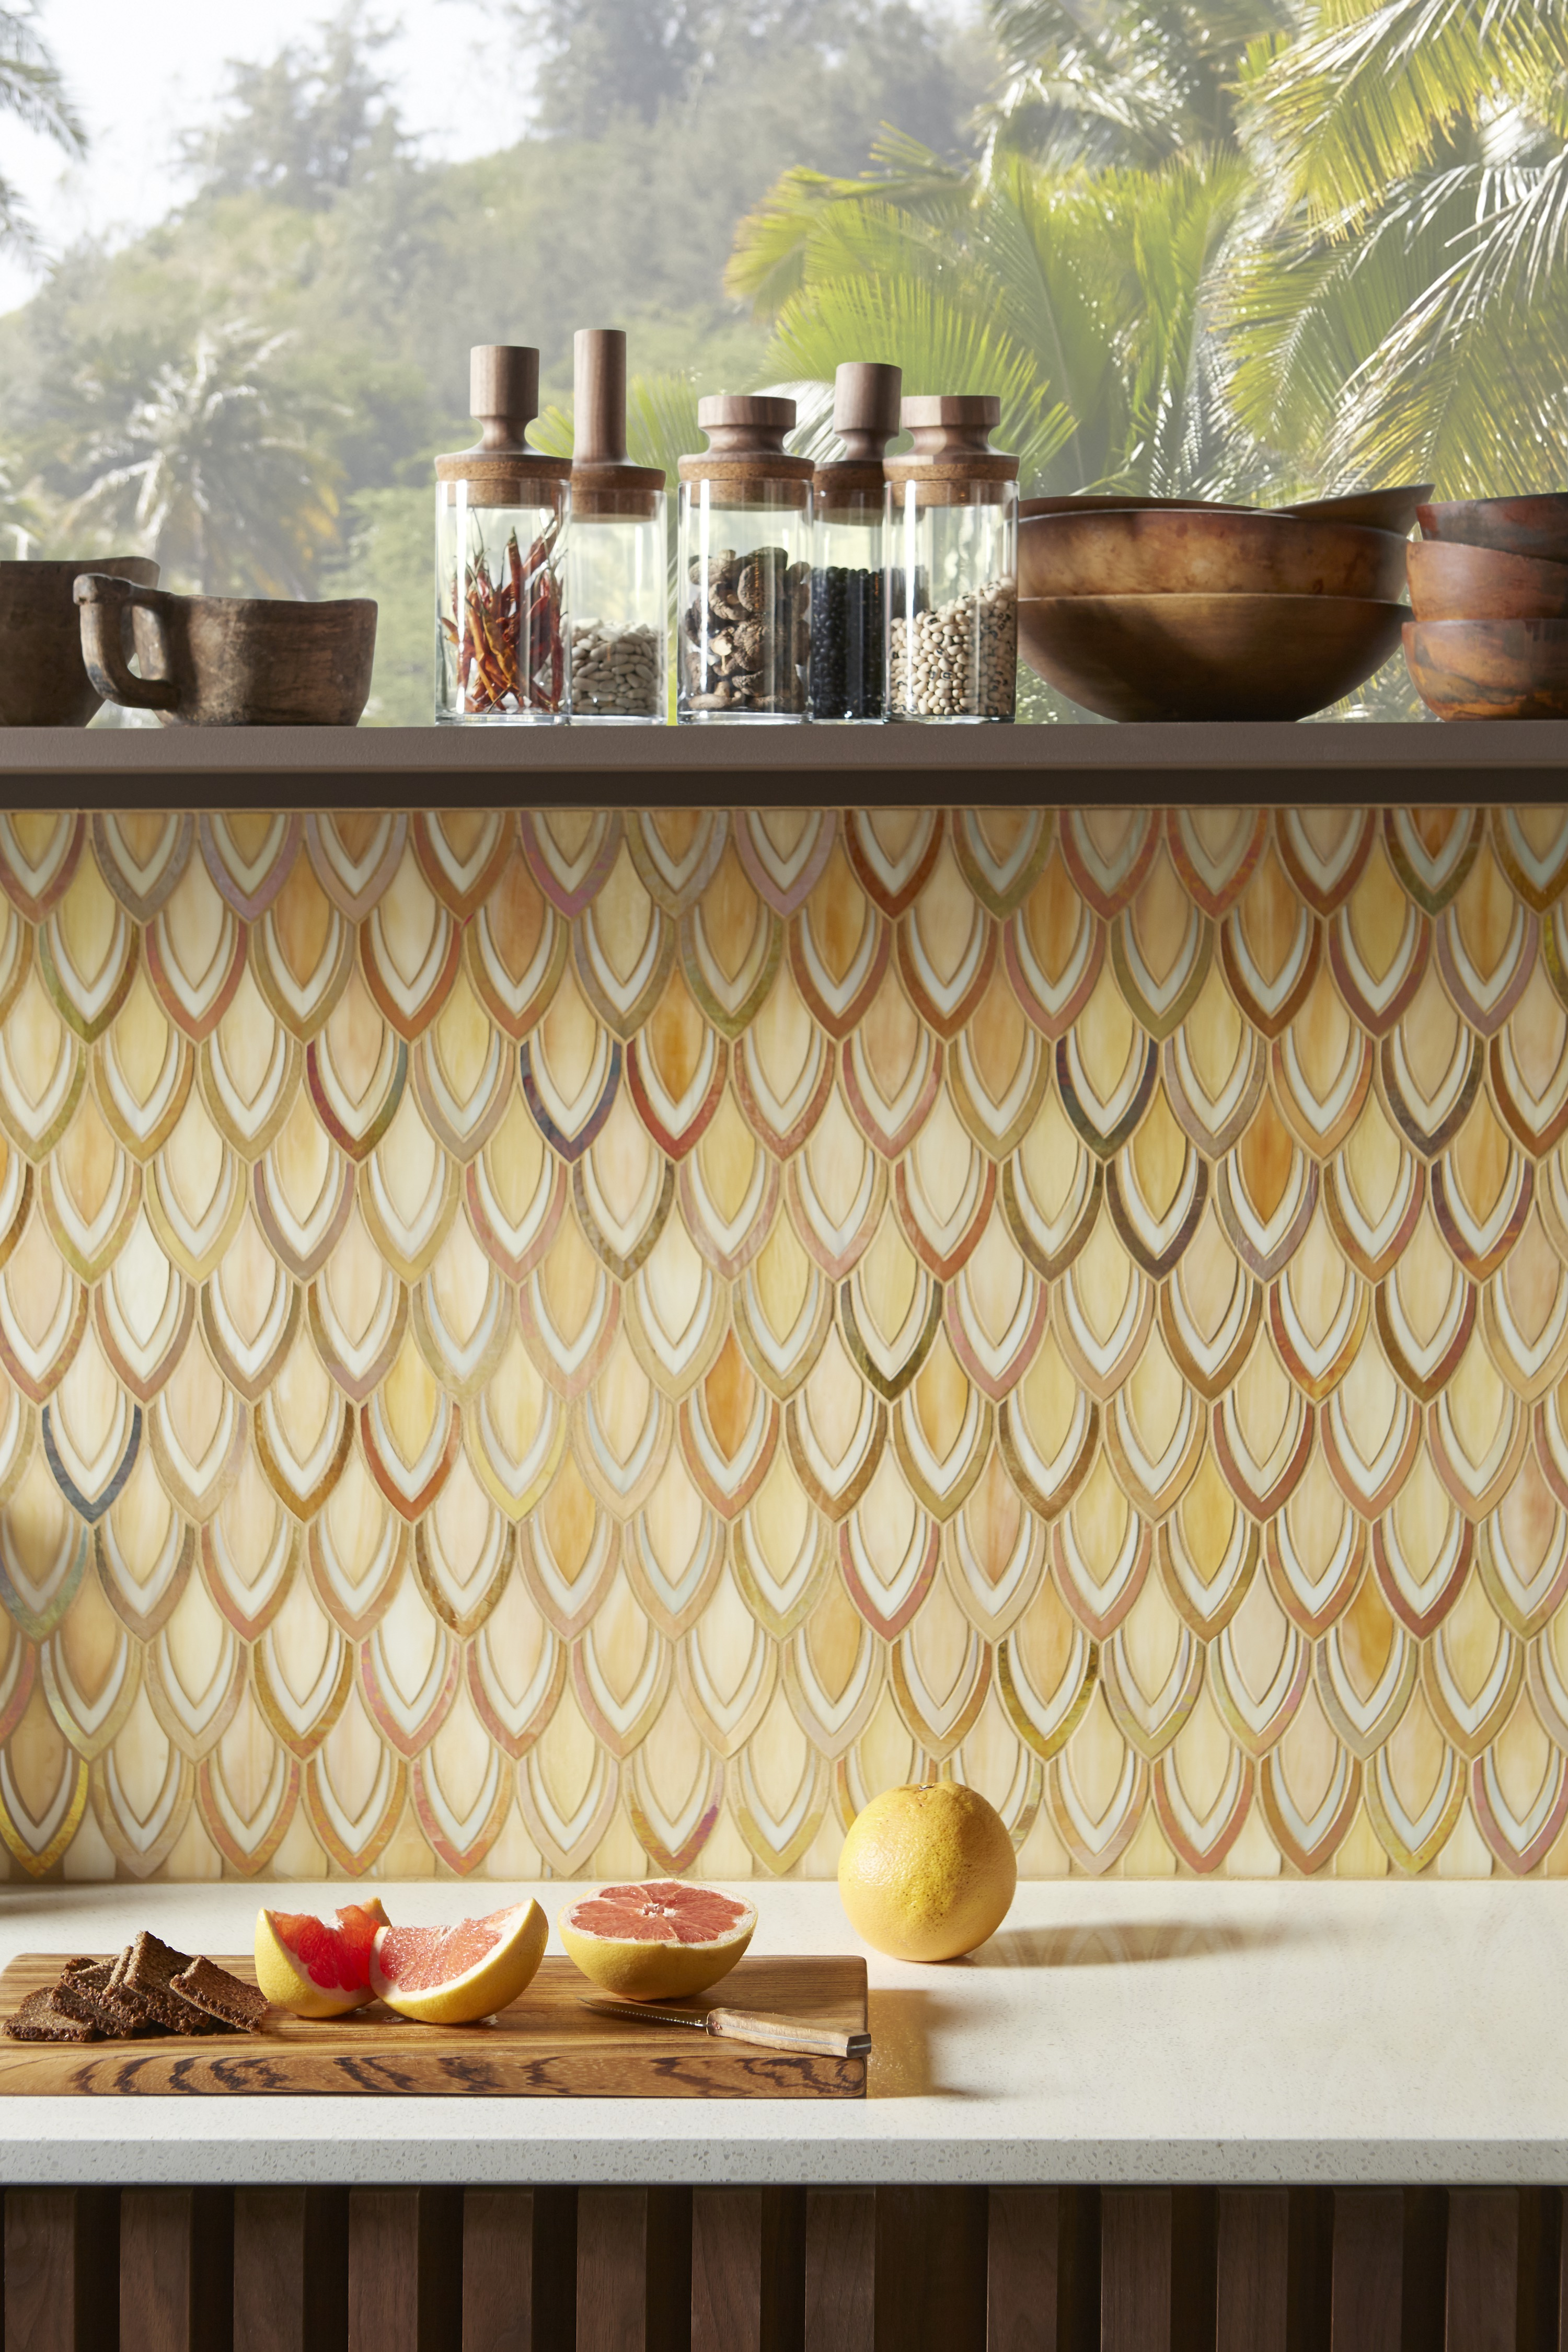 ANN SACKS® Chrysalis mosaics tile     Endlessly shifting from playful pinks and blues to sunny golds and browns, the iridescent backsplash with metallic veining brings movement and vitality to the design.